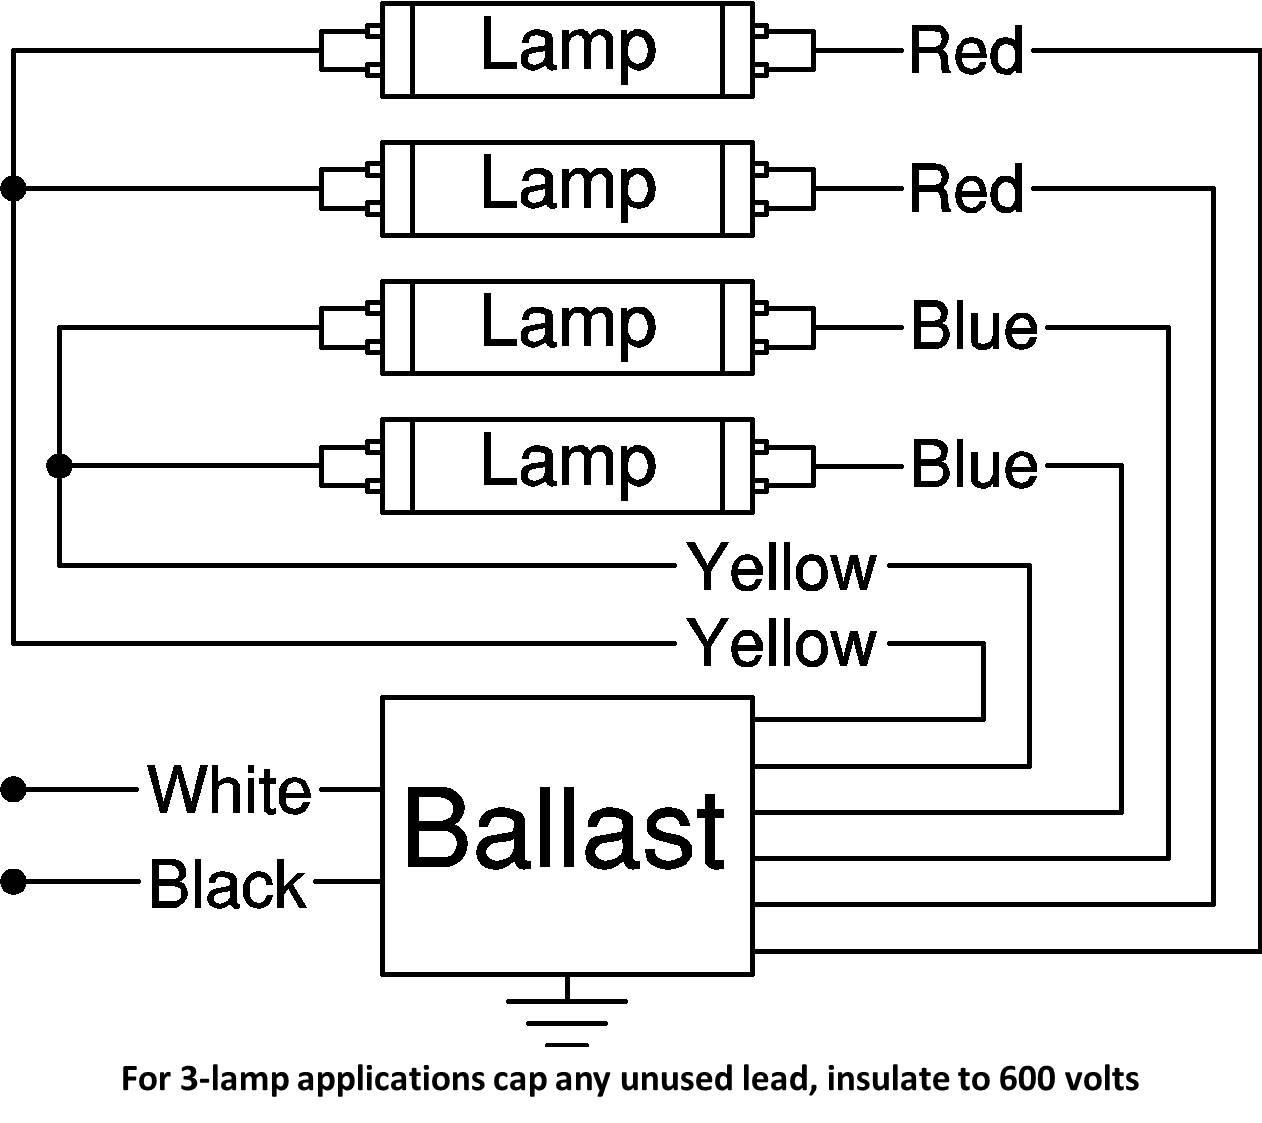 Wiring Diagram for 4/3 Lamp Installation - Ballast Exit Leads